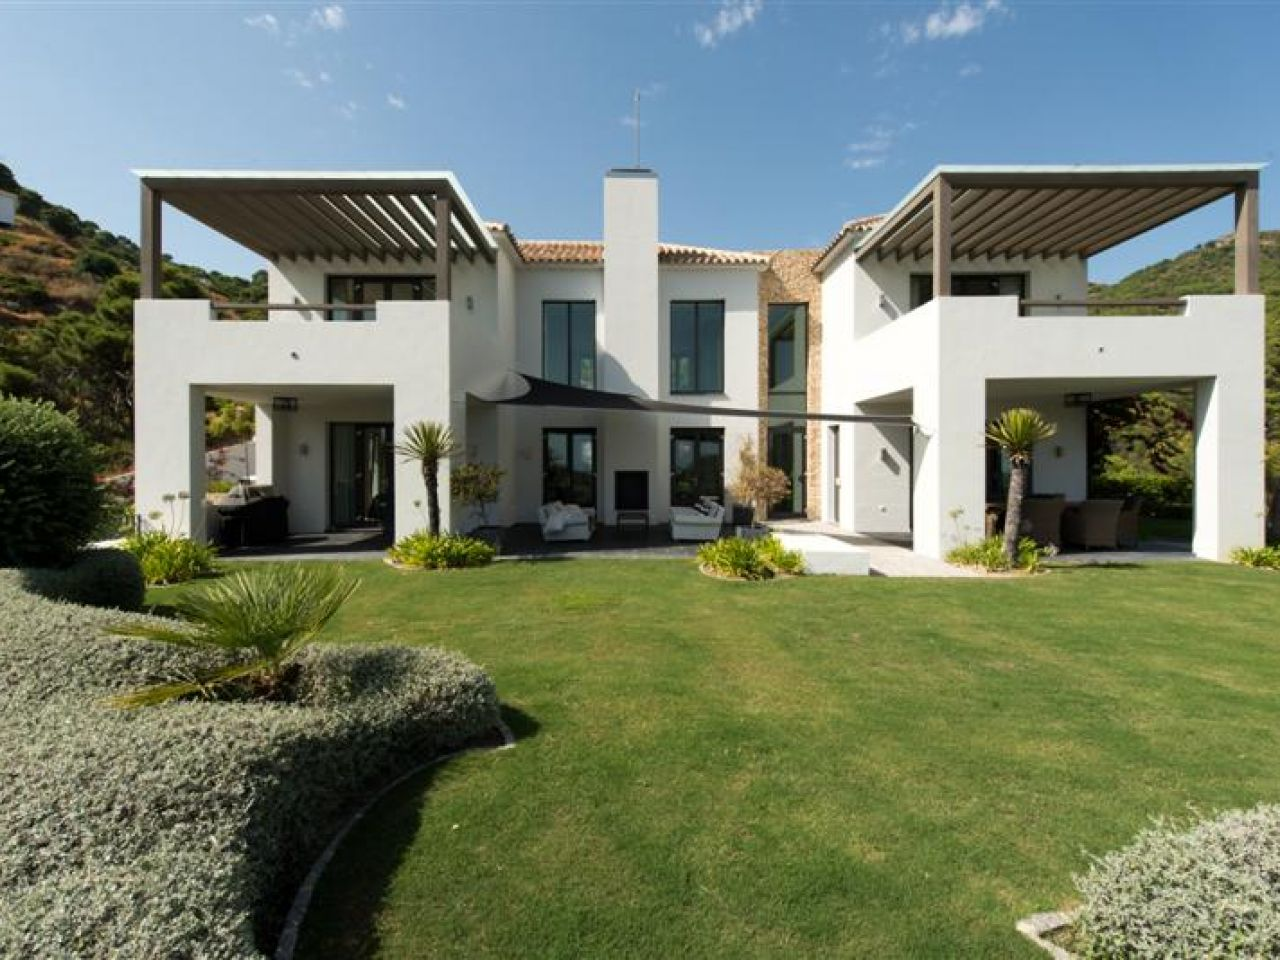 Tek Ailelik Ev için Satış at contemporary villa in Monte Mayor Benahavis, Costa Del Sol, Ispanya